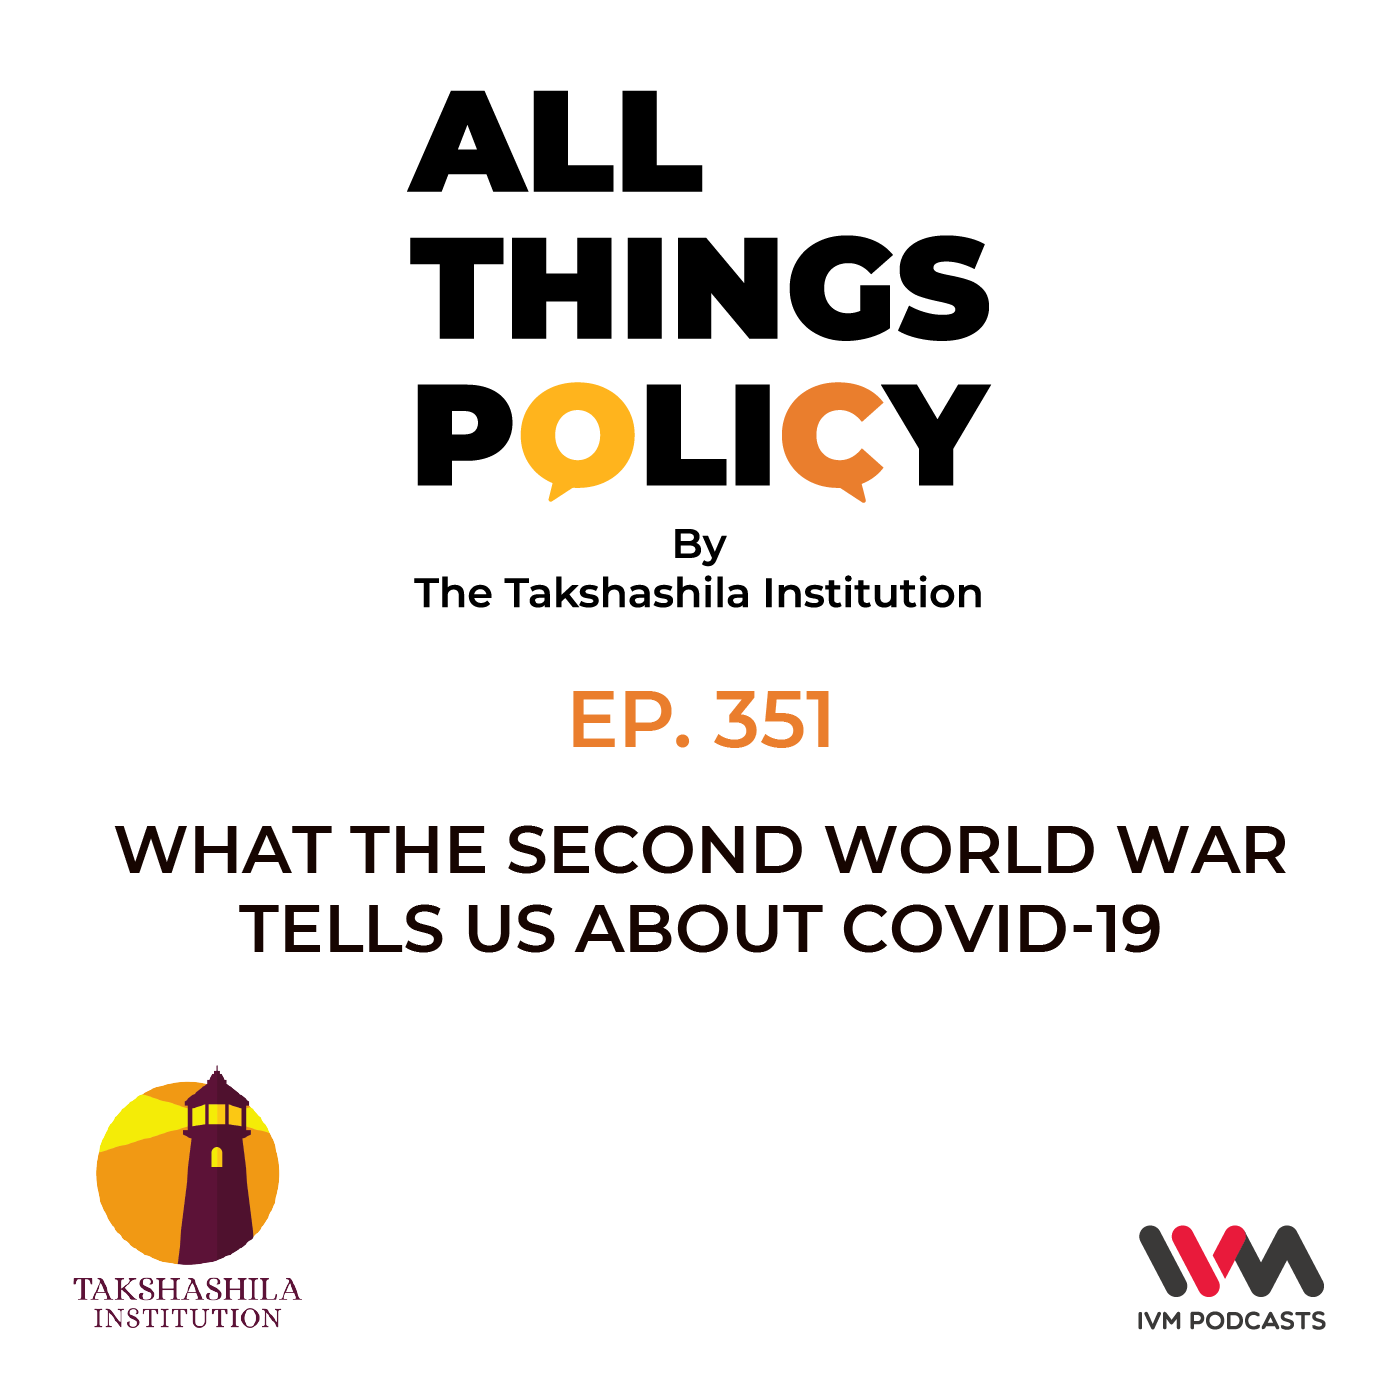 Ep. 351: What the Second World War tells us about COVID-19